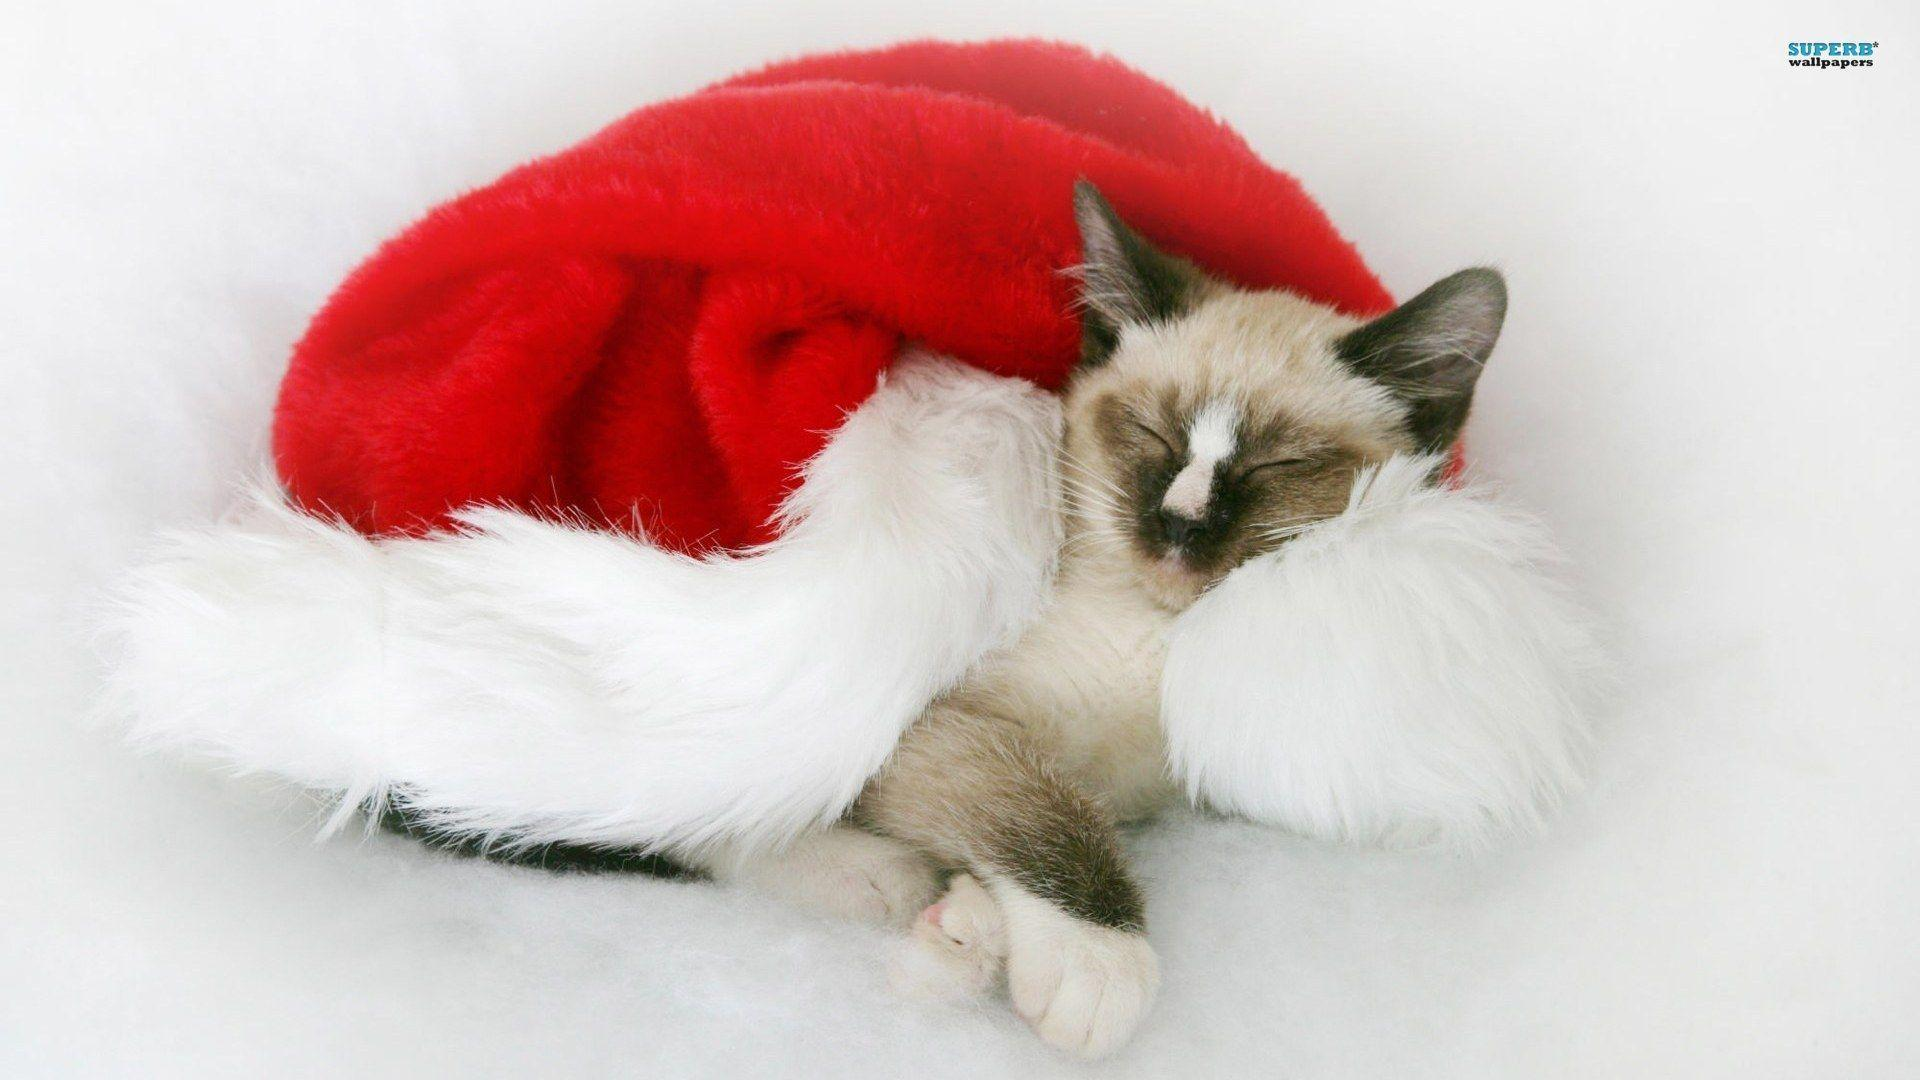 Wallpapers For > Christmas Kitten Wallpaper